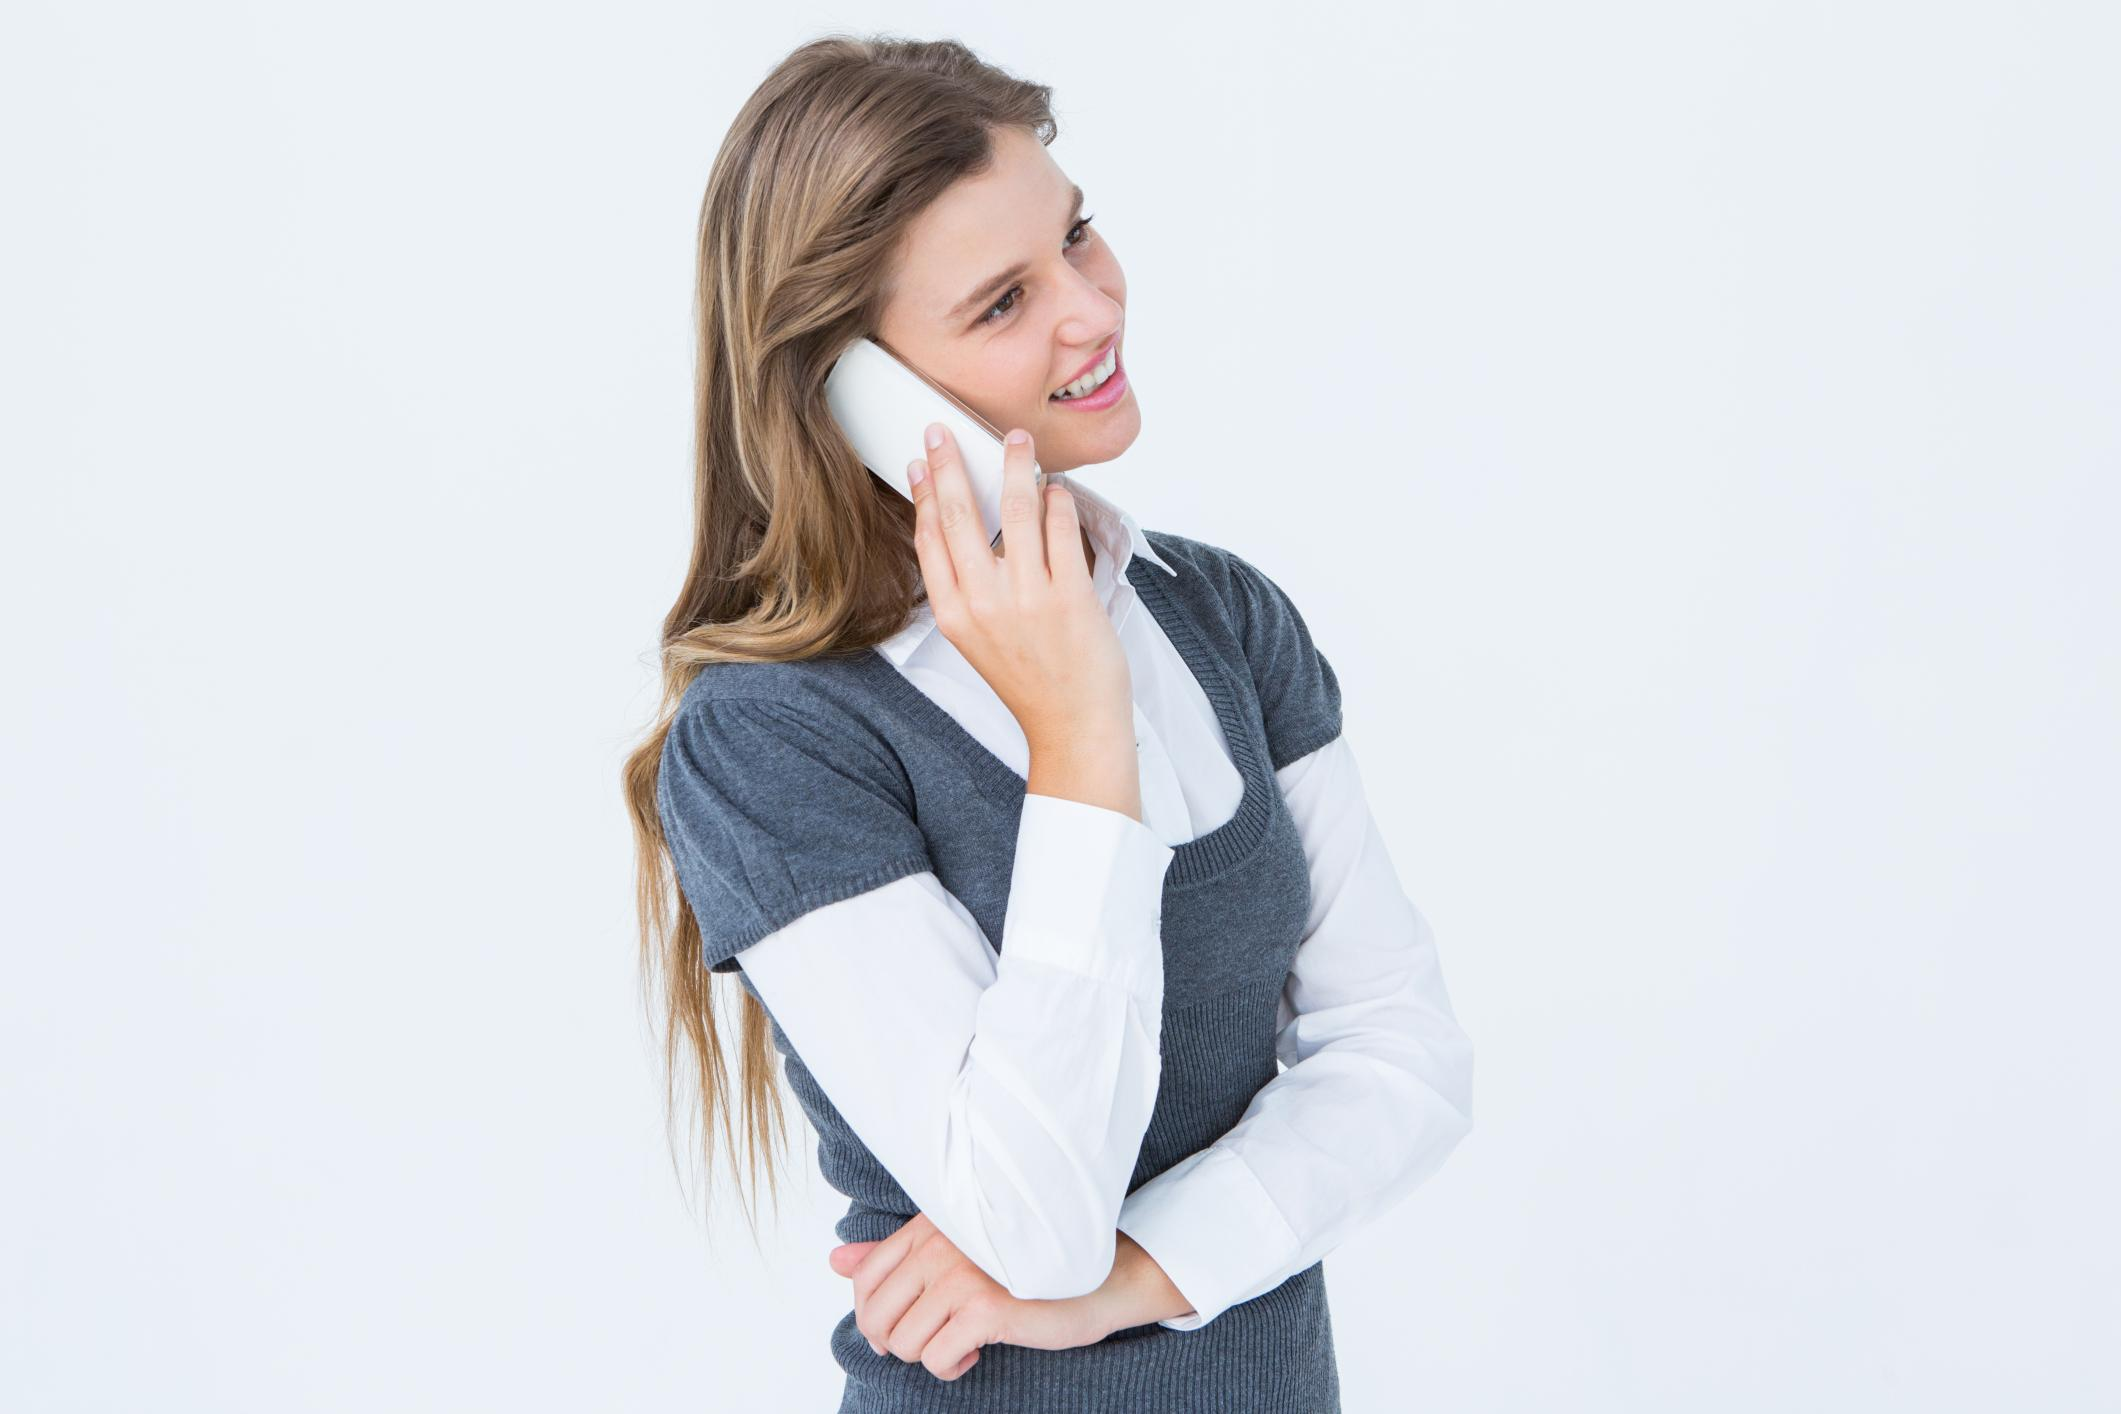 This is a picture of a girl having a phone call.